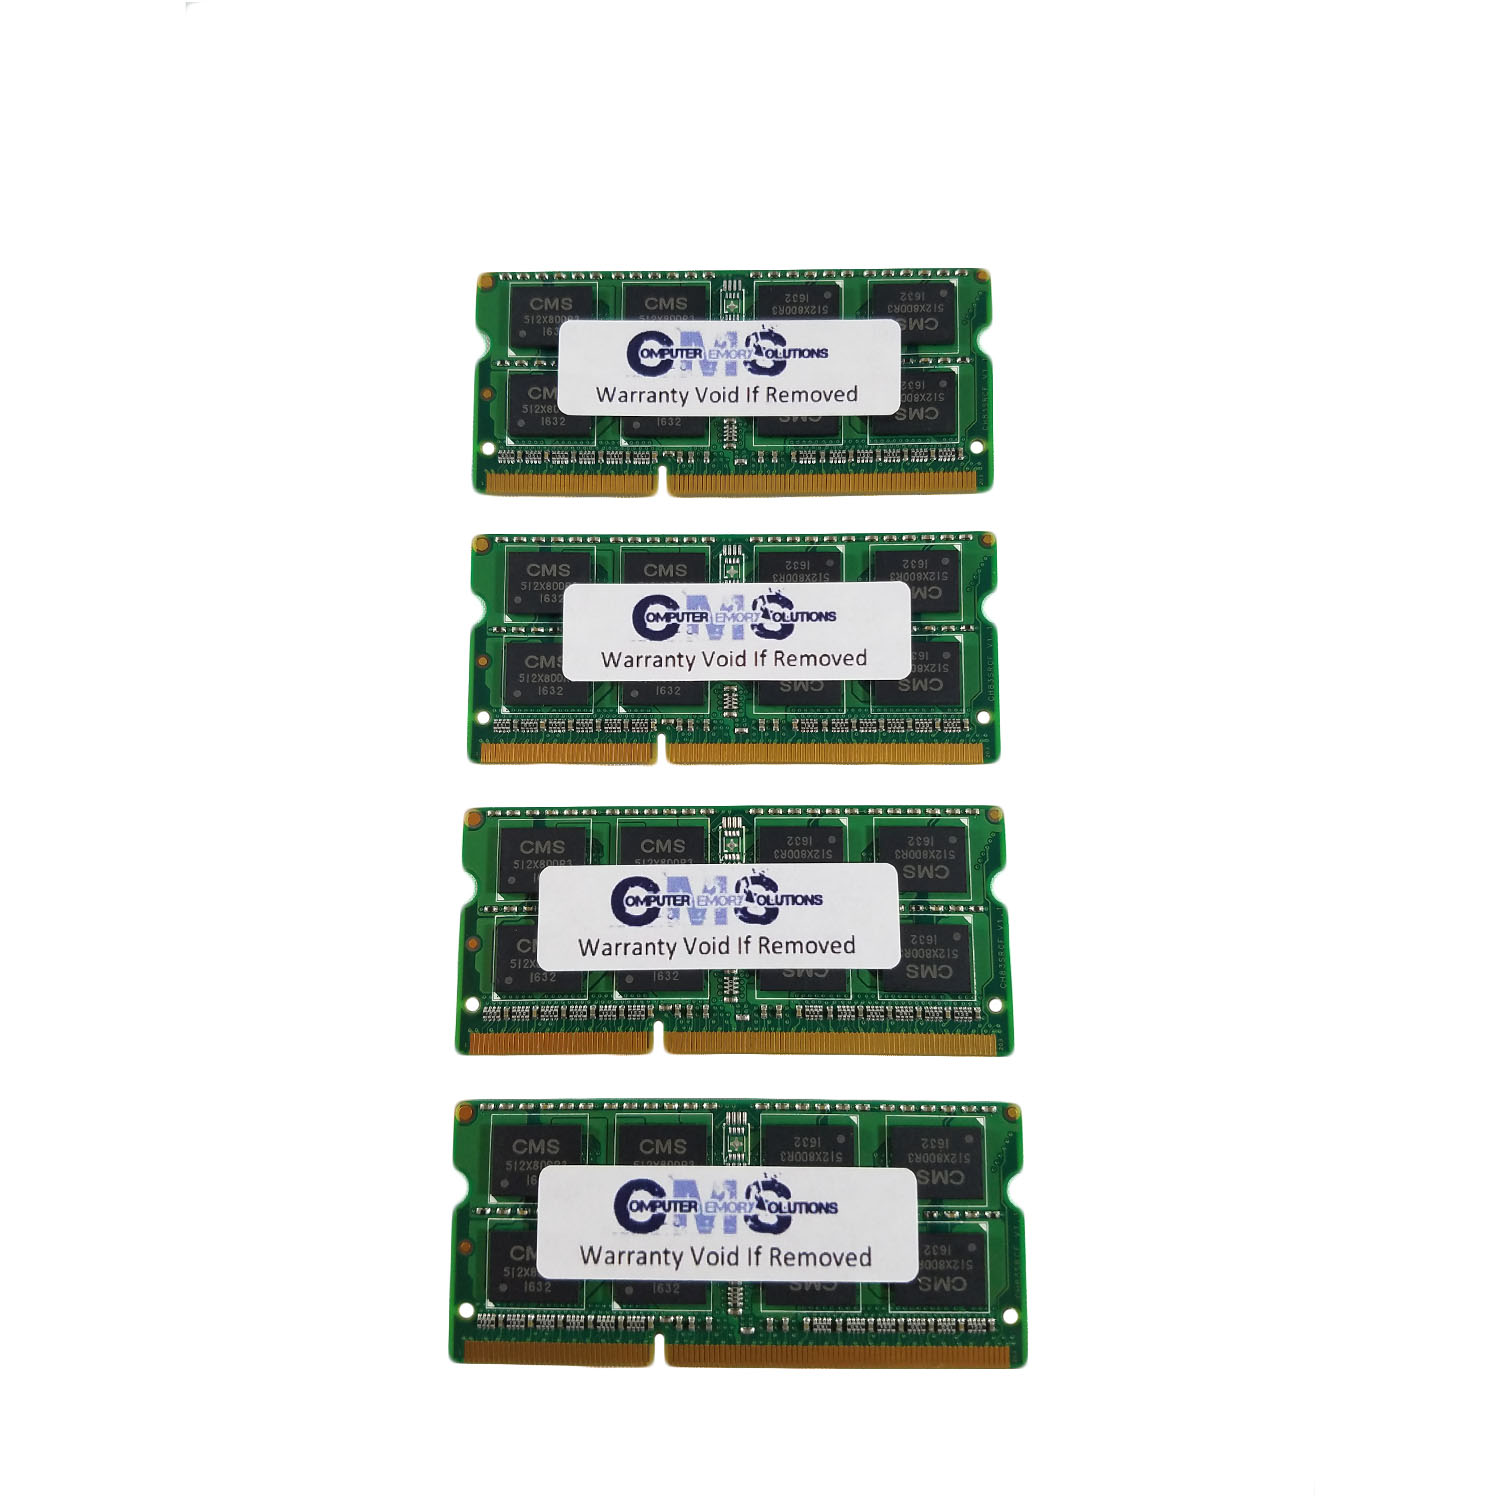 32GB (4x8GB) Memory RAM SODIMM Compatible with Alienware M17x R4 Notebook